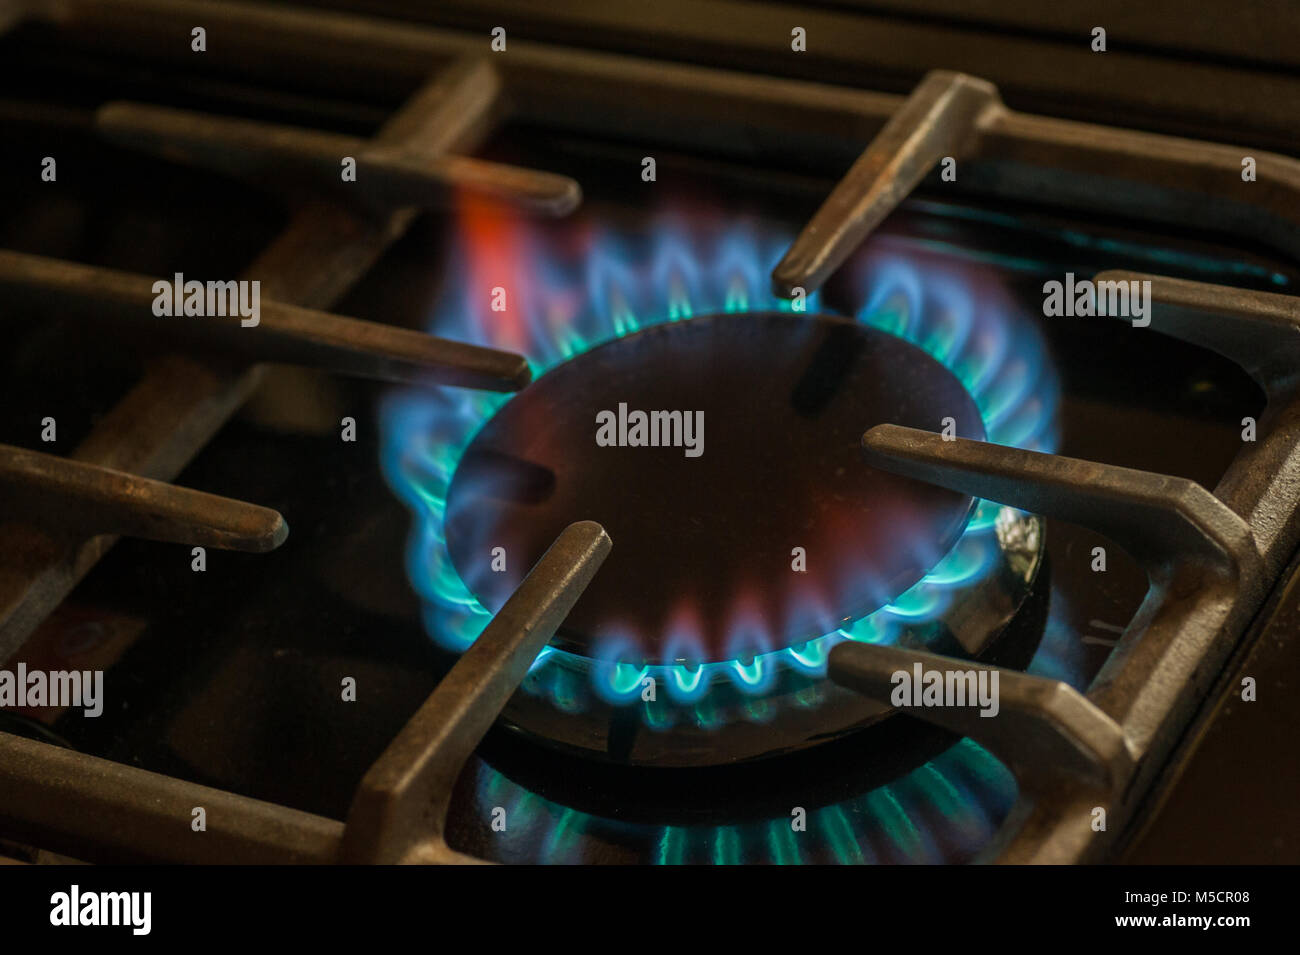 Gas flame on a range. - Stock Image